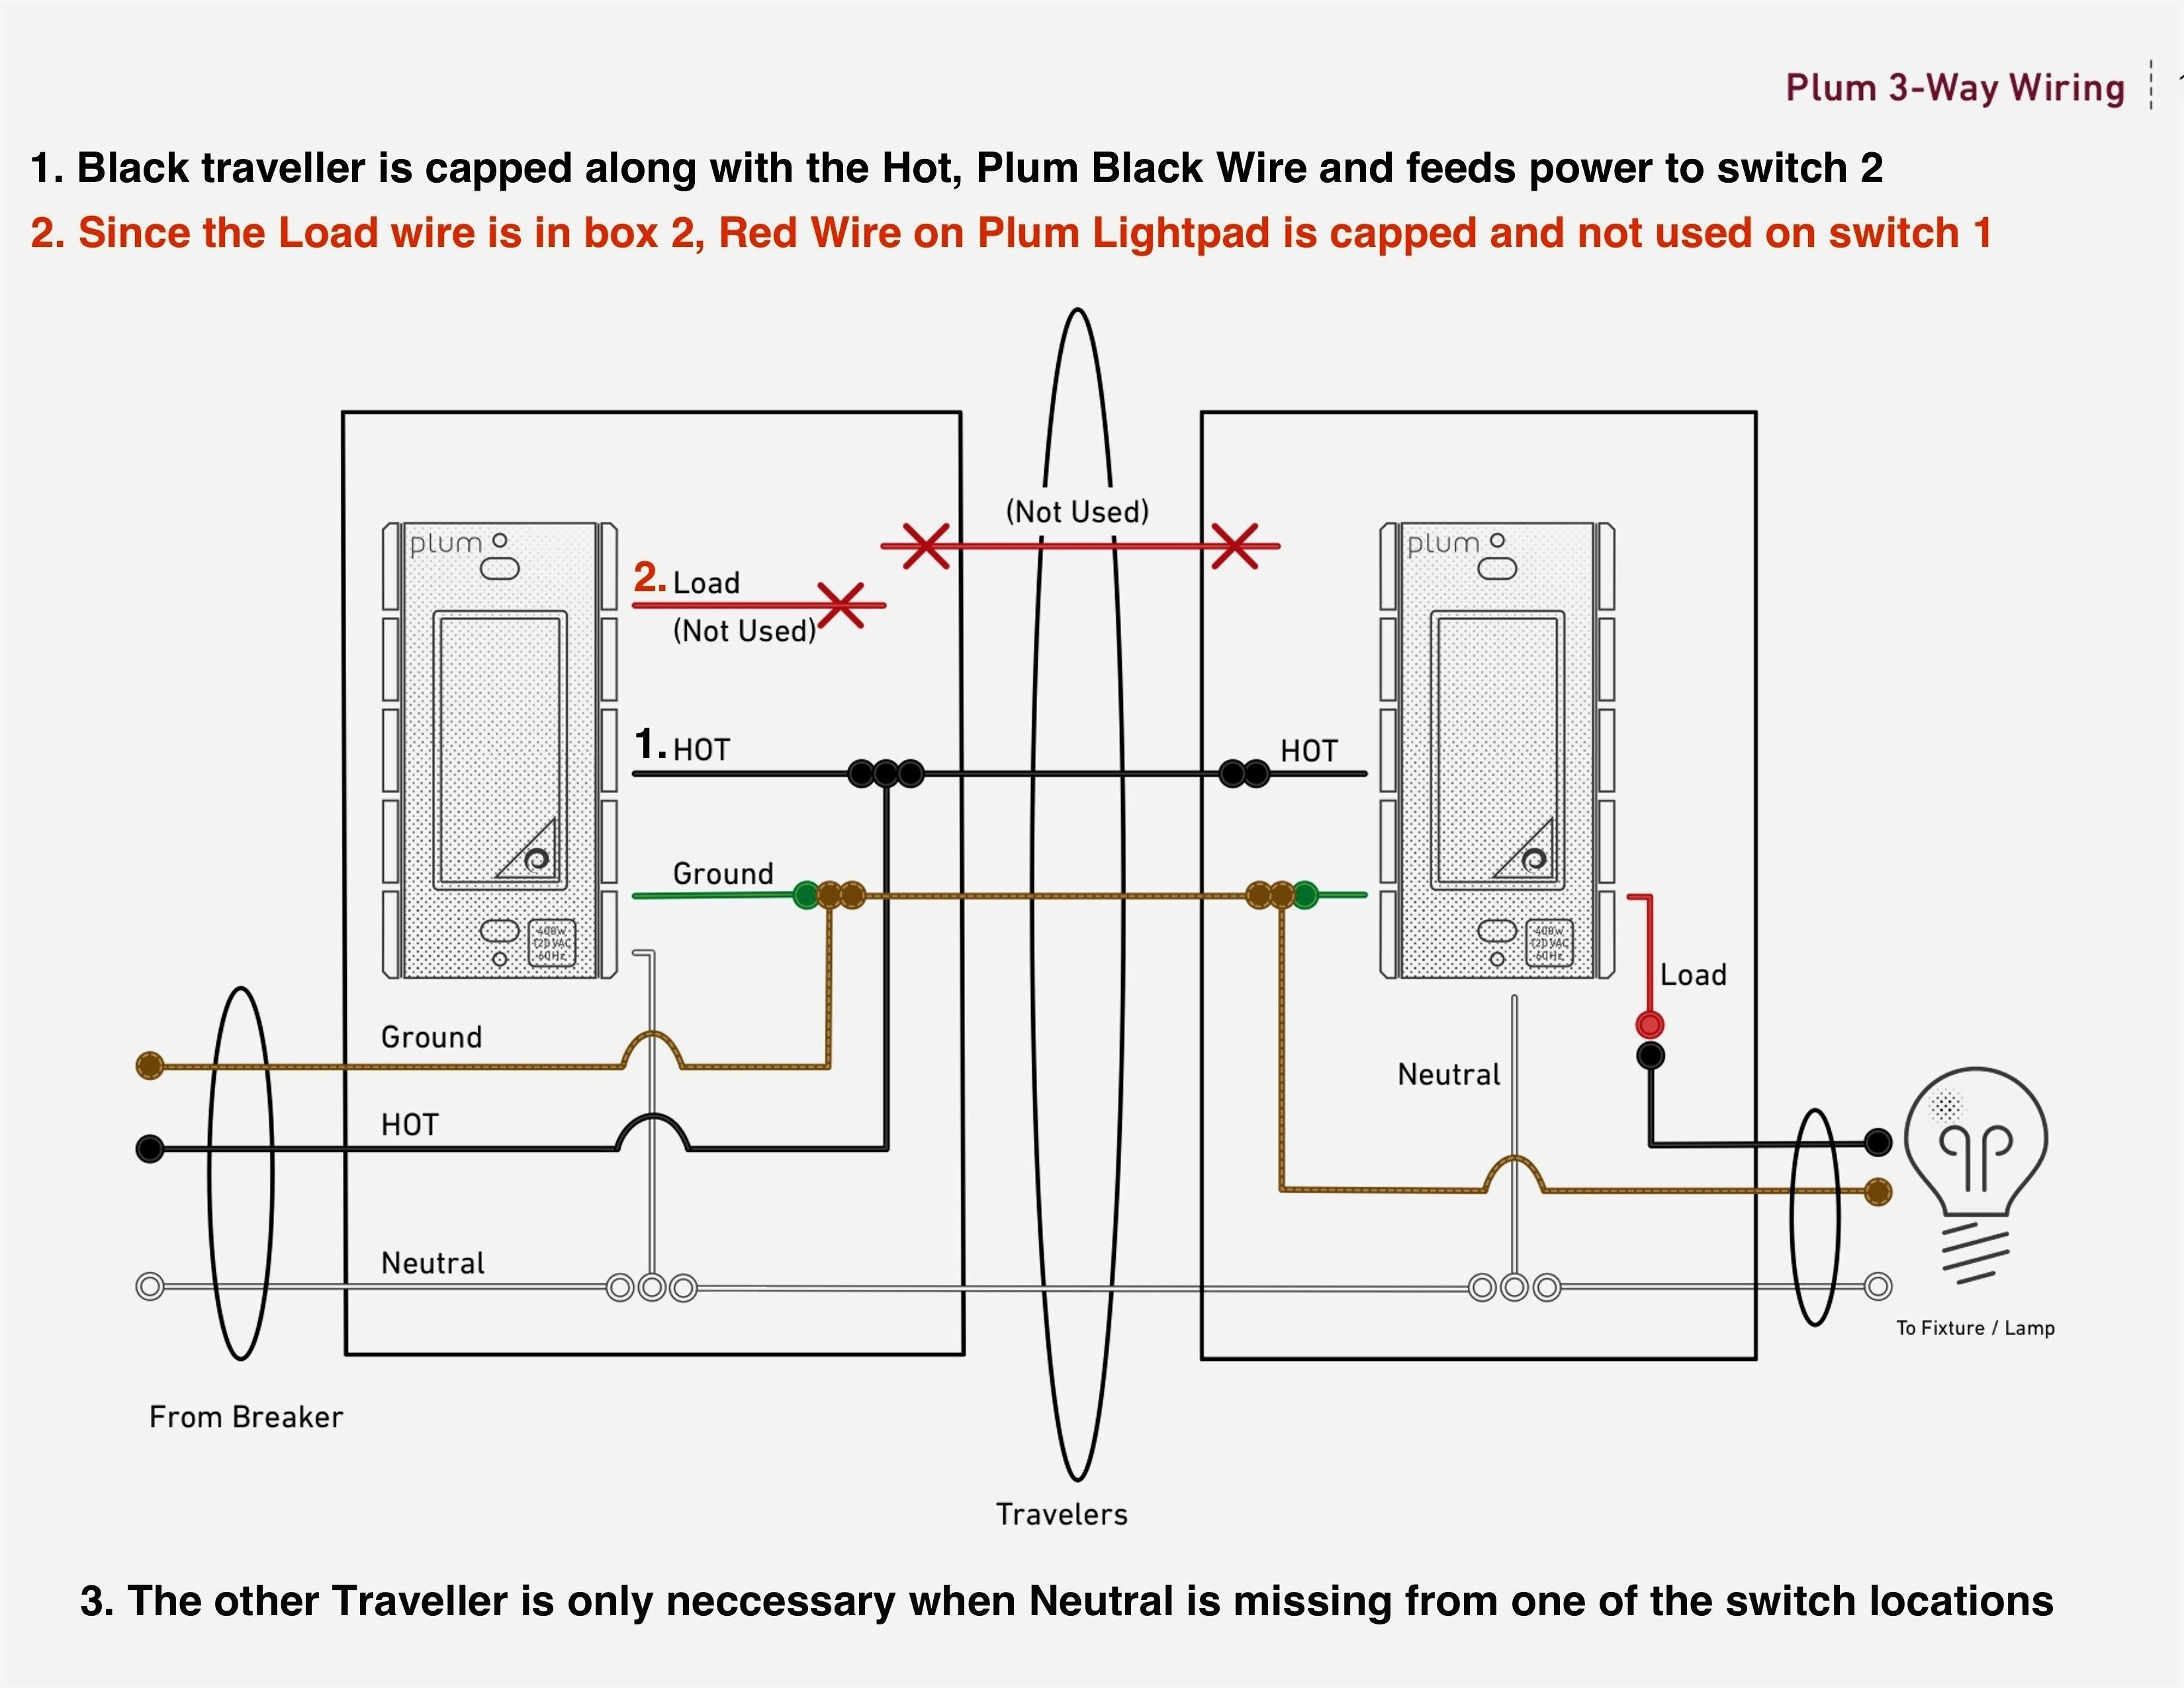 H7Jjl In Leviton 3 Way Switch Wiring Diagram | Philteg.in - Leviton 3 Way Dimmer Switch Wiring Diagram